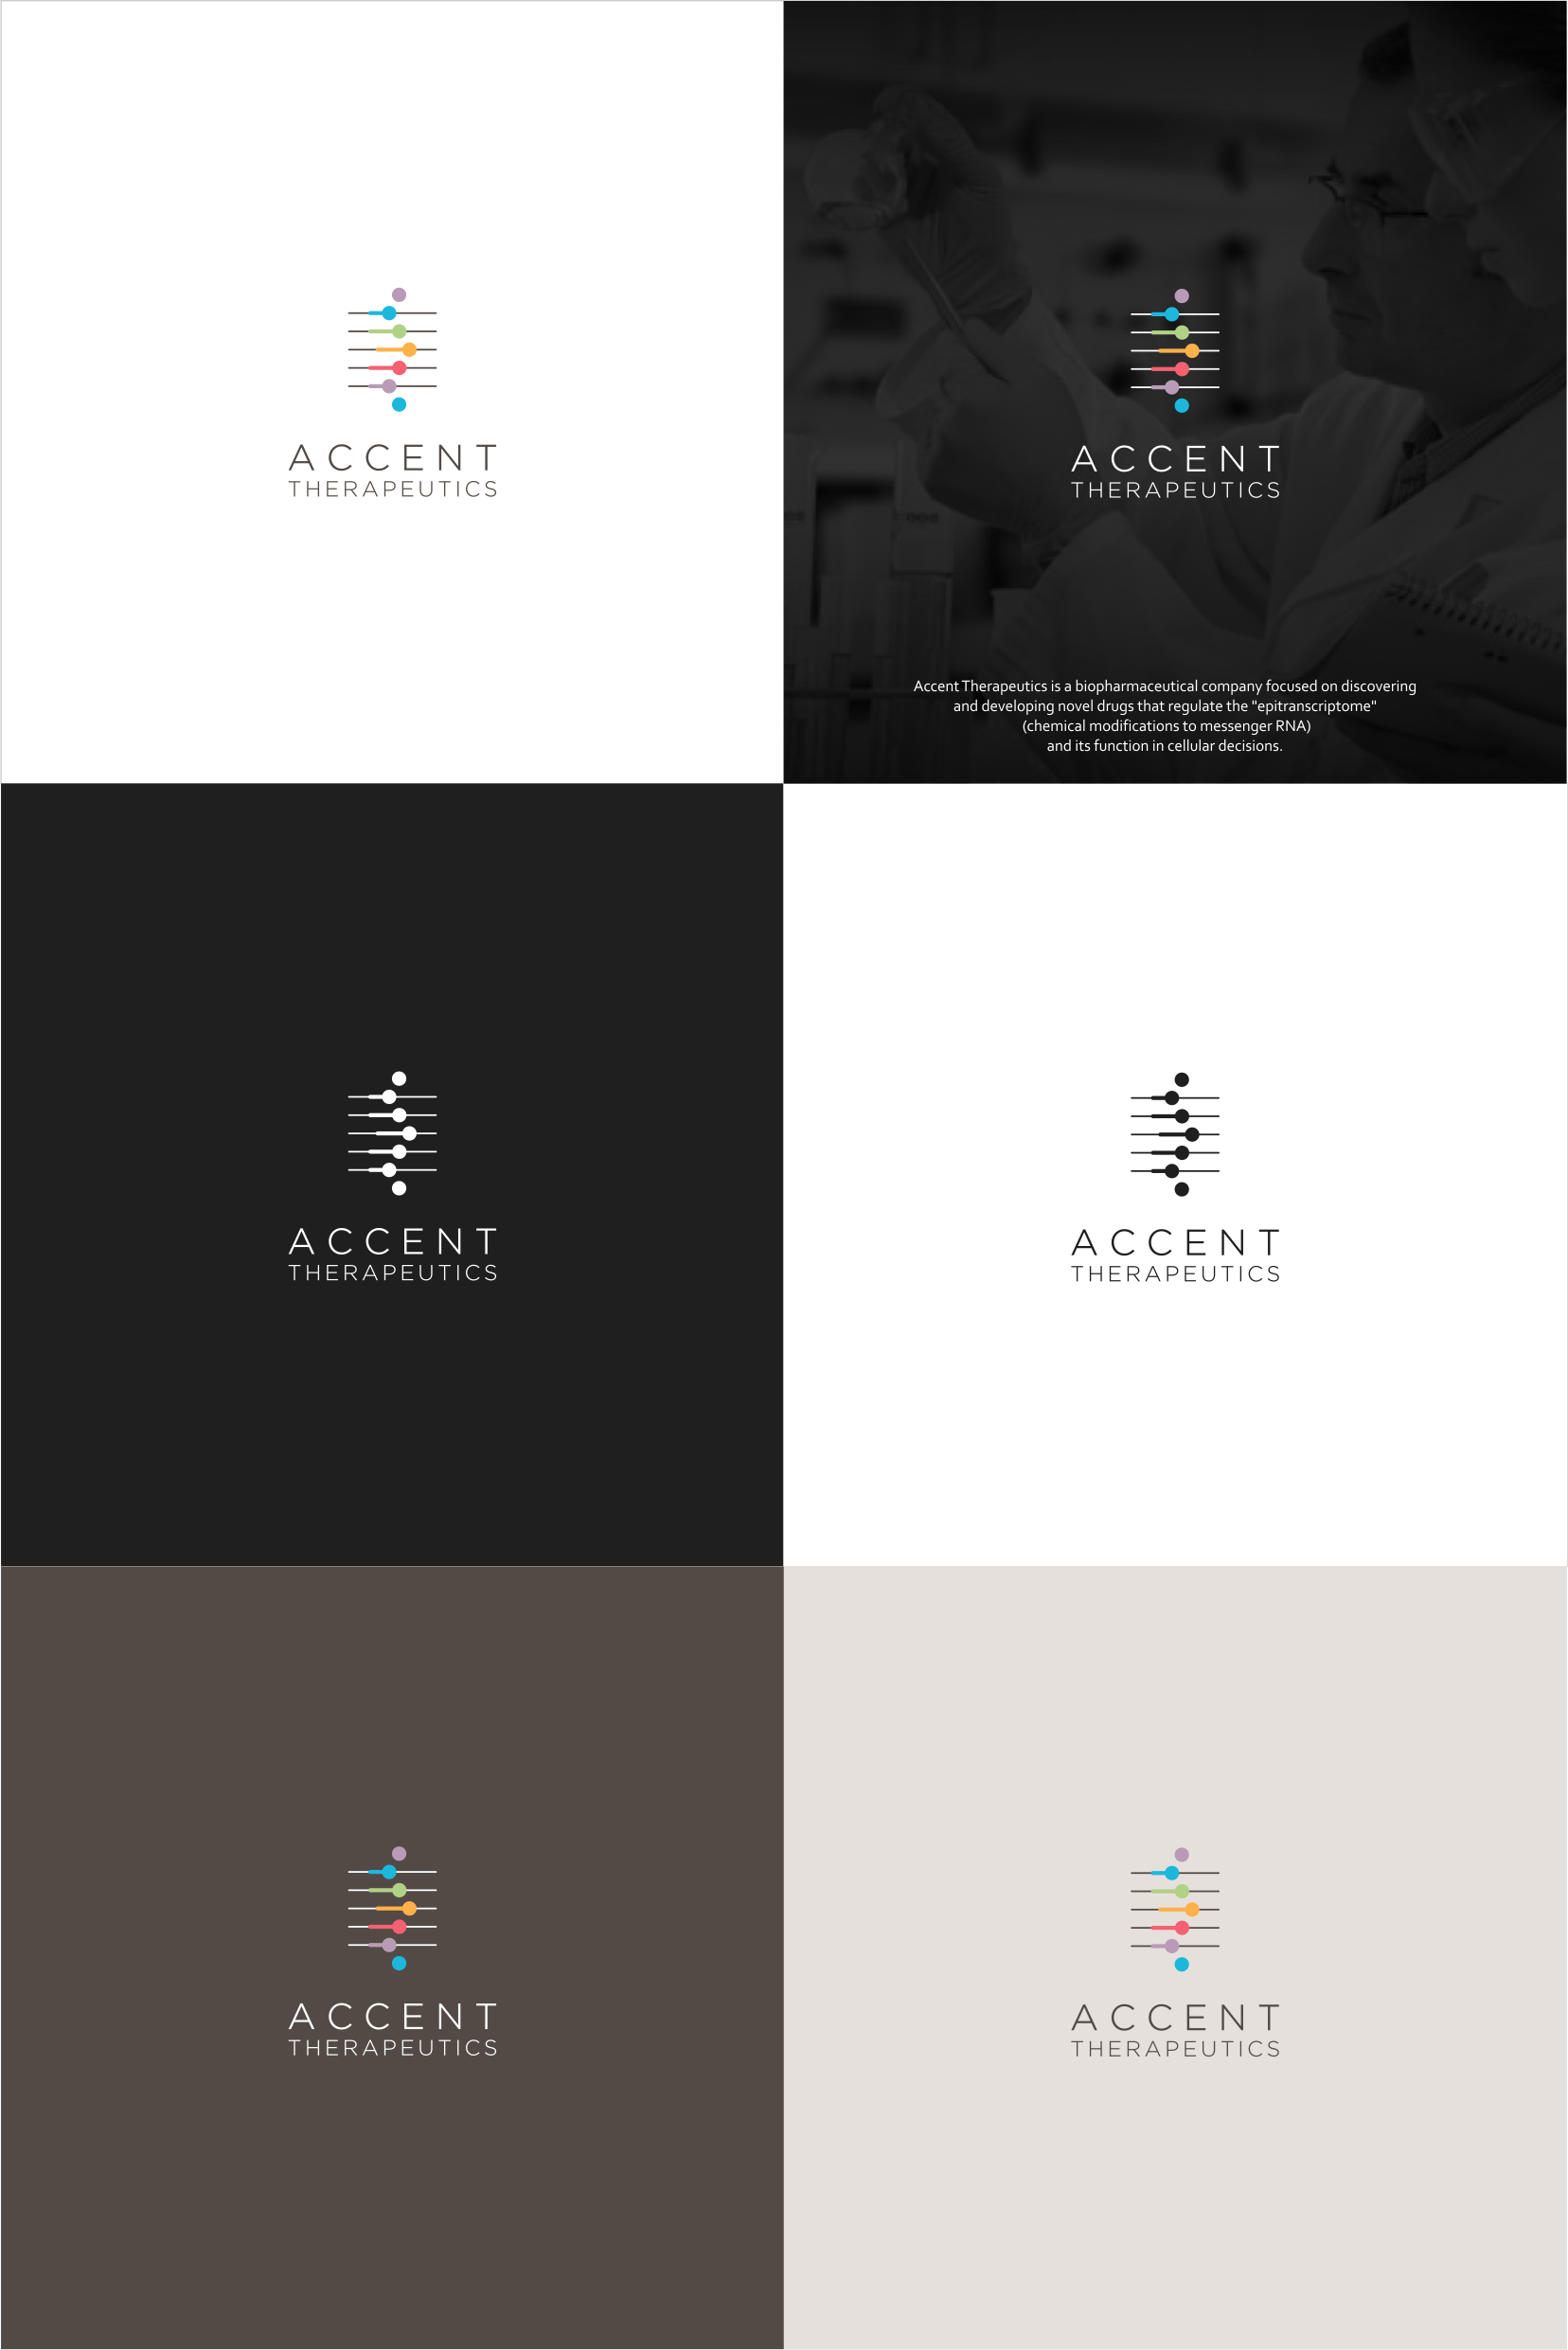 Create a standout logo for an innovative biotech startup